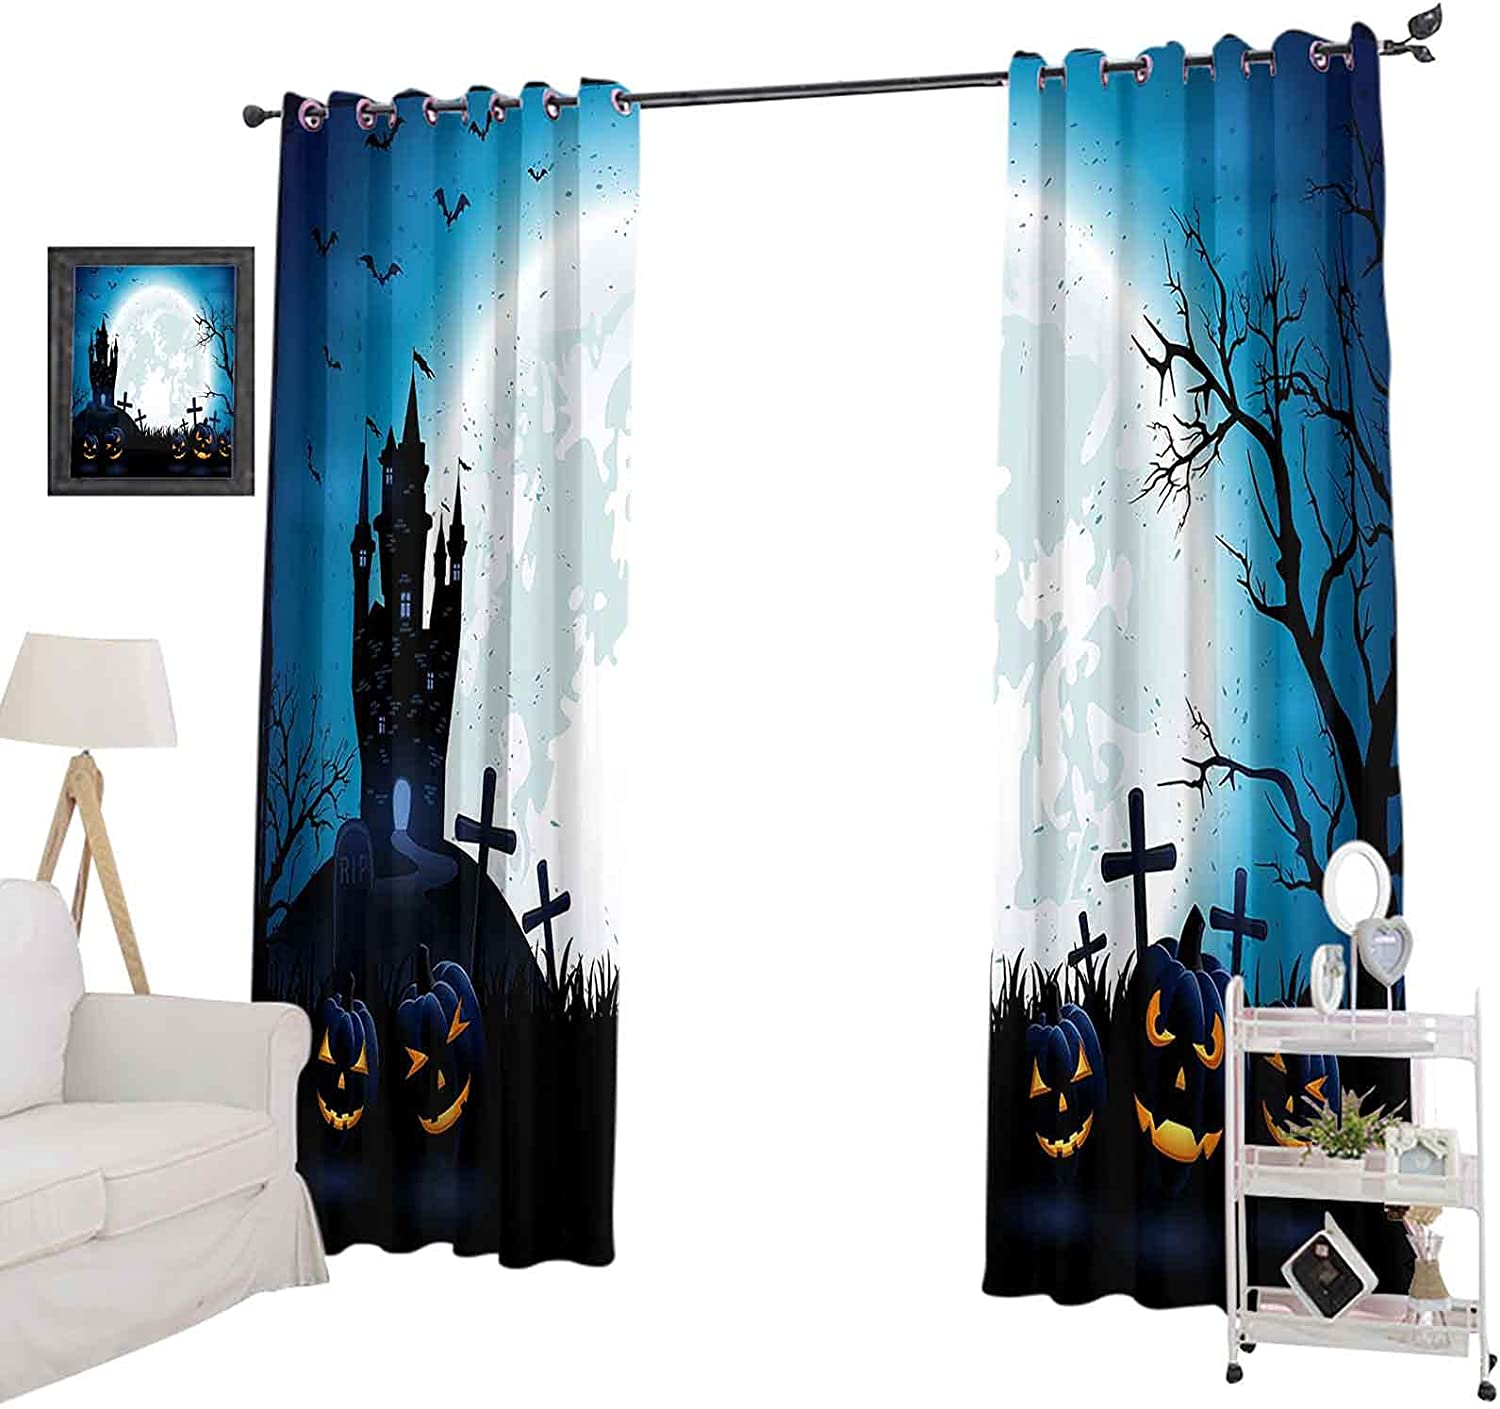 Thermal Insulated Curtains Now on sale Drapes 108 Darkeni specialty shop Room Inches Long